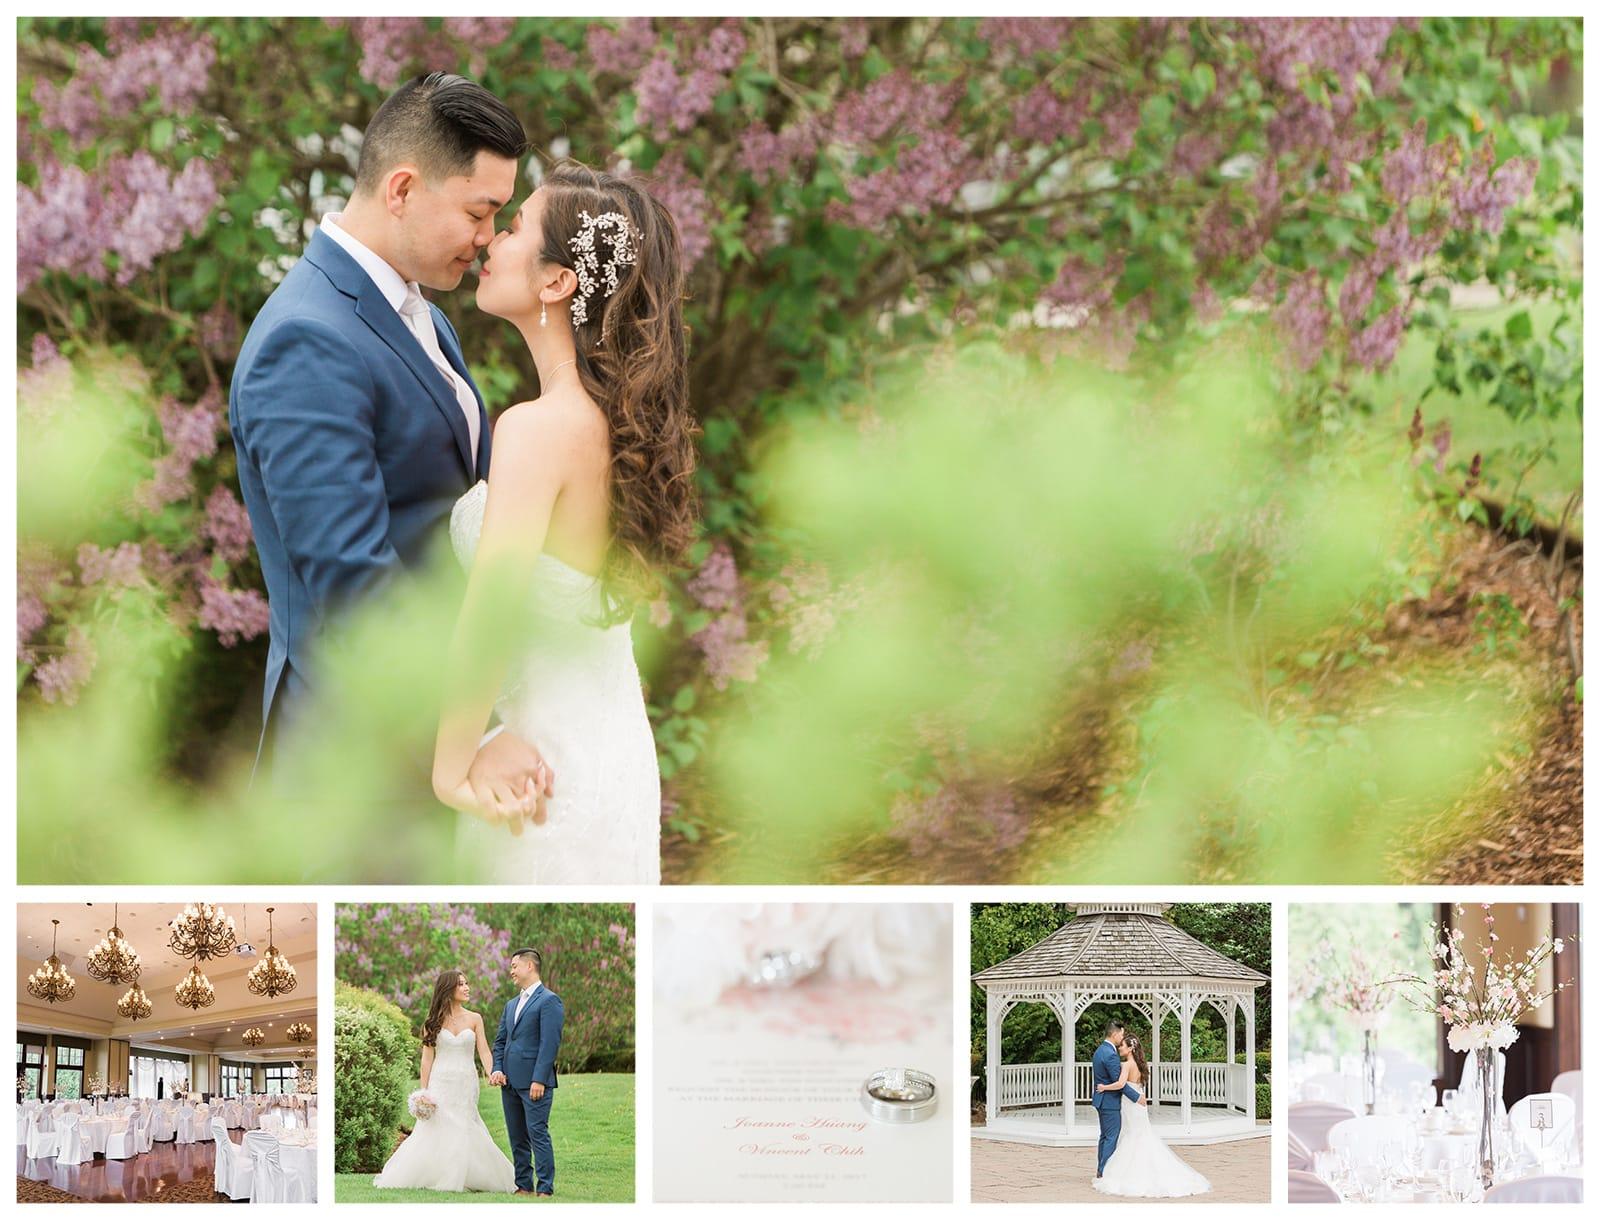 A Sweet Spring Wedding at Deer Creek Golf Club: Joanne + Vincent